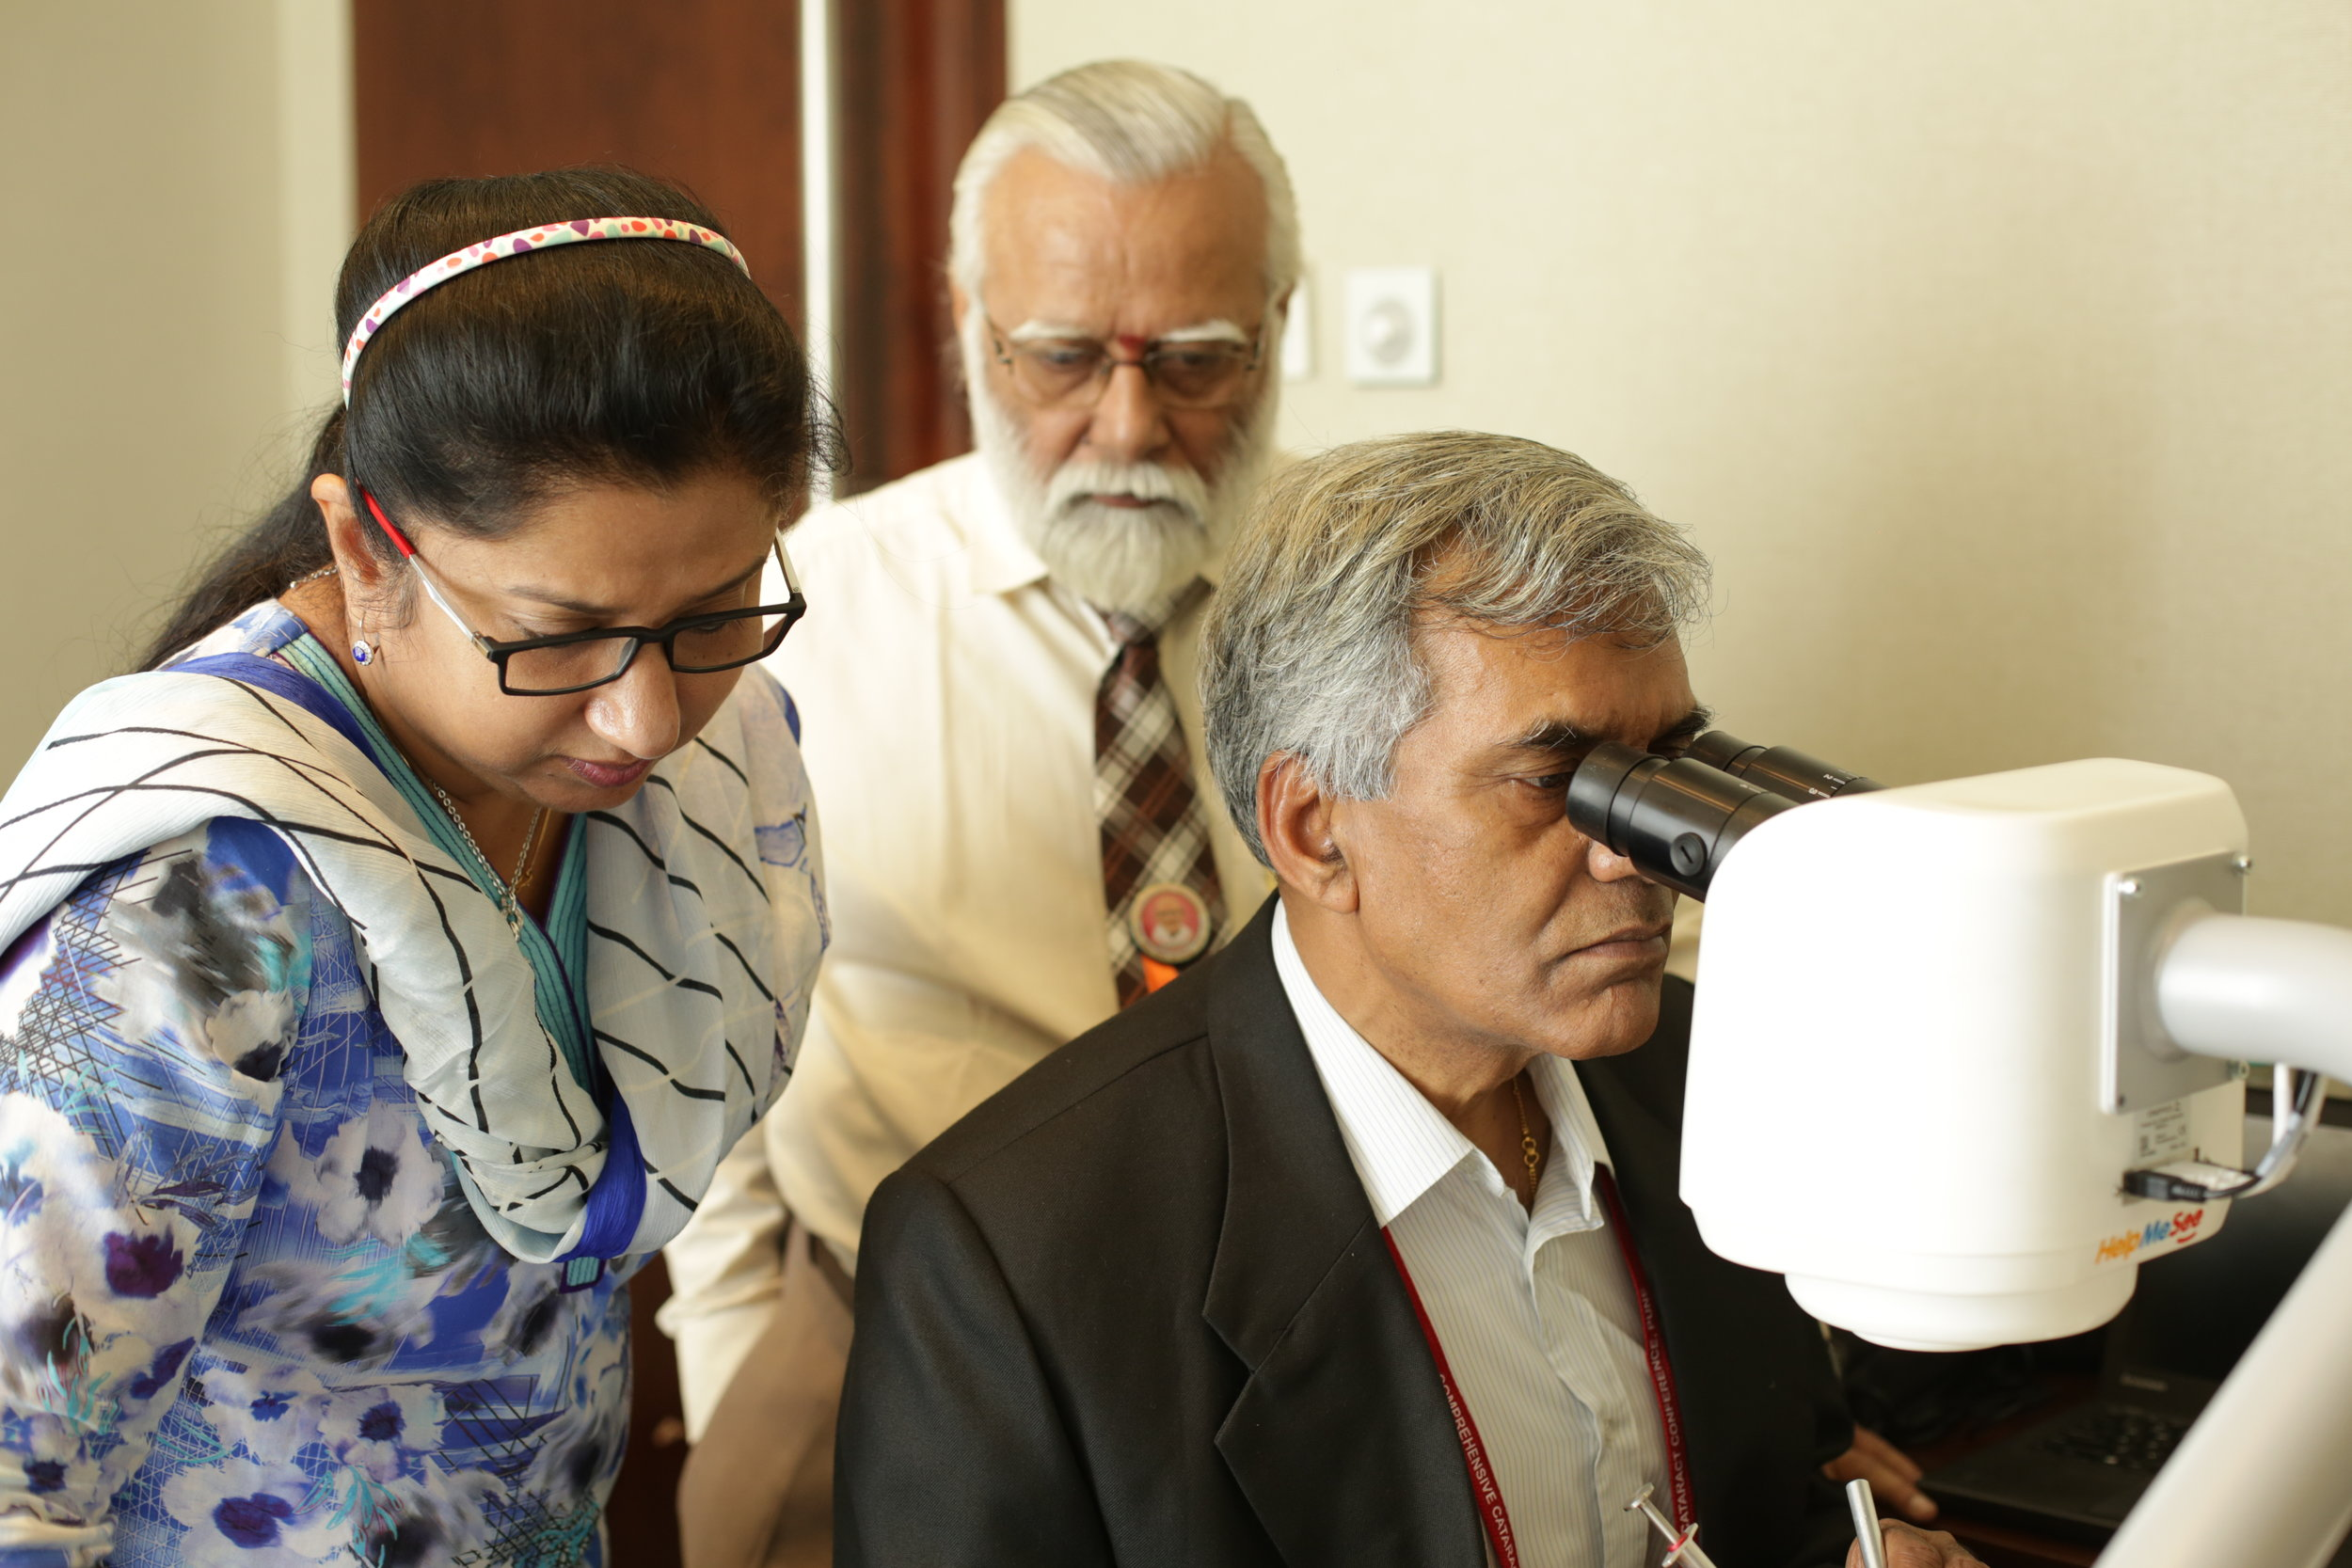 """DECEMBER   India  - The Hindu publishes article """" HelpMeSee Unfolds Cutting-Edge Technology to Combat Blindness """"  - HelpMeSee presents to global eye health leaders at the  First World Conference on MSICS  in Pune, India"""